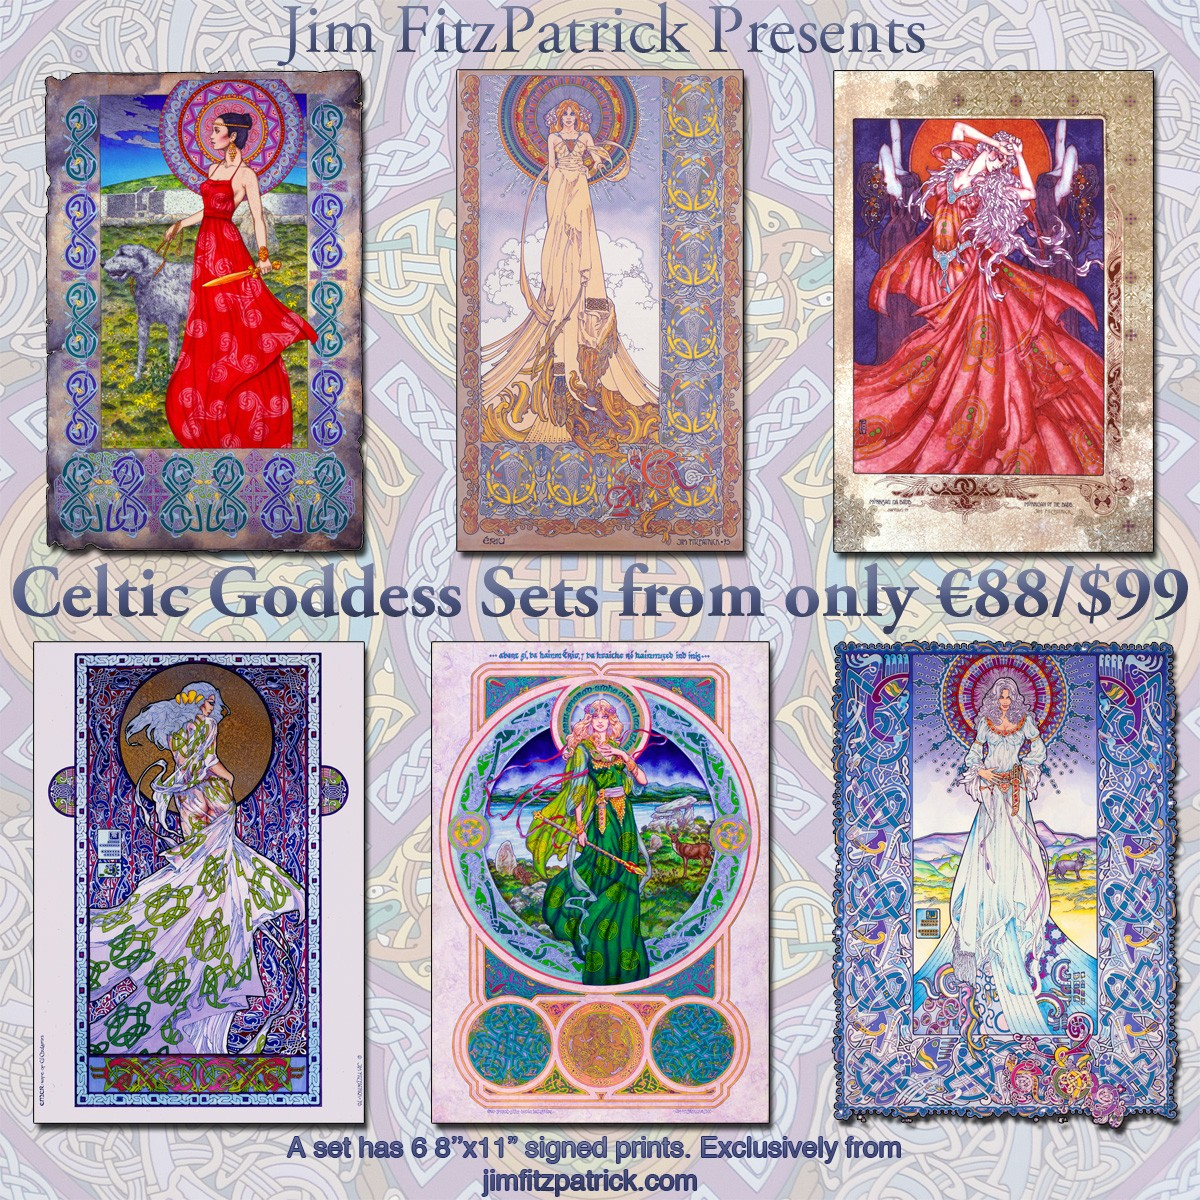 Prints, Irish, Ireland, Myth, IrishArt, CelticArt, Celtic, Mythology, Art, CelticMythology, JimFitzPatrick, theBookofConquests, women, erotic, erotica, Goddessess, Celtic gods,